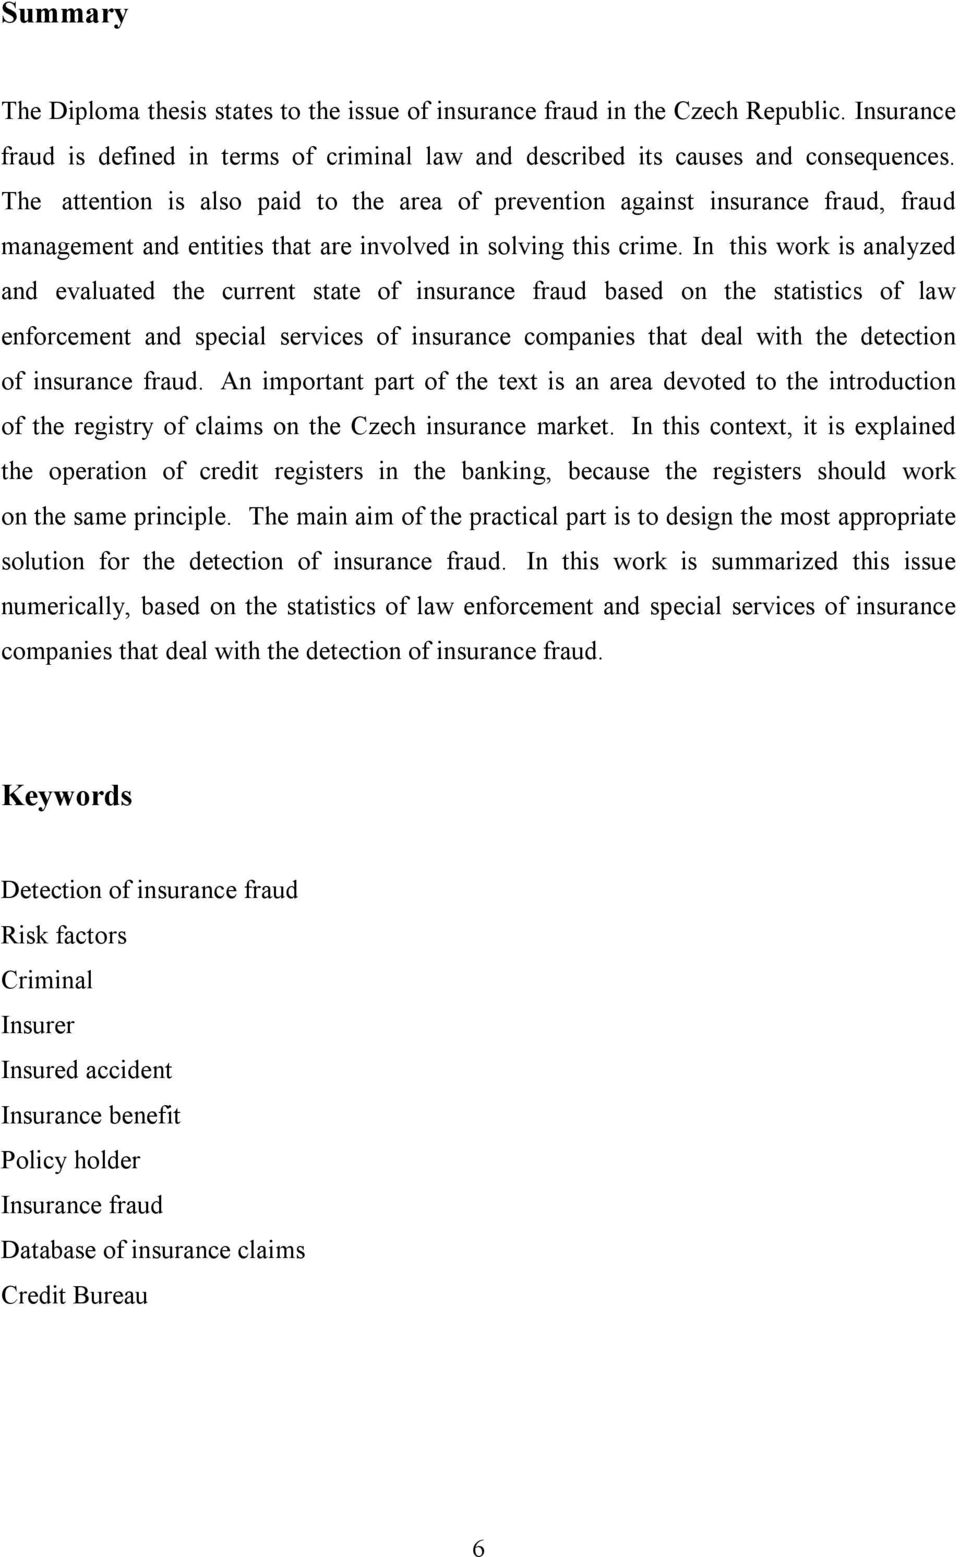 In this work is analyzed and evaluated the current state of insurance fraud based on the statistics of law enforcement and special services of insurance companies that deal with the detection of